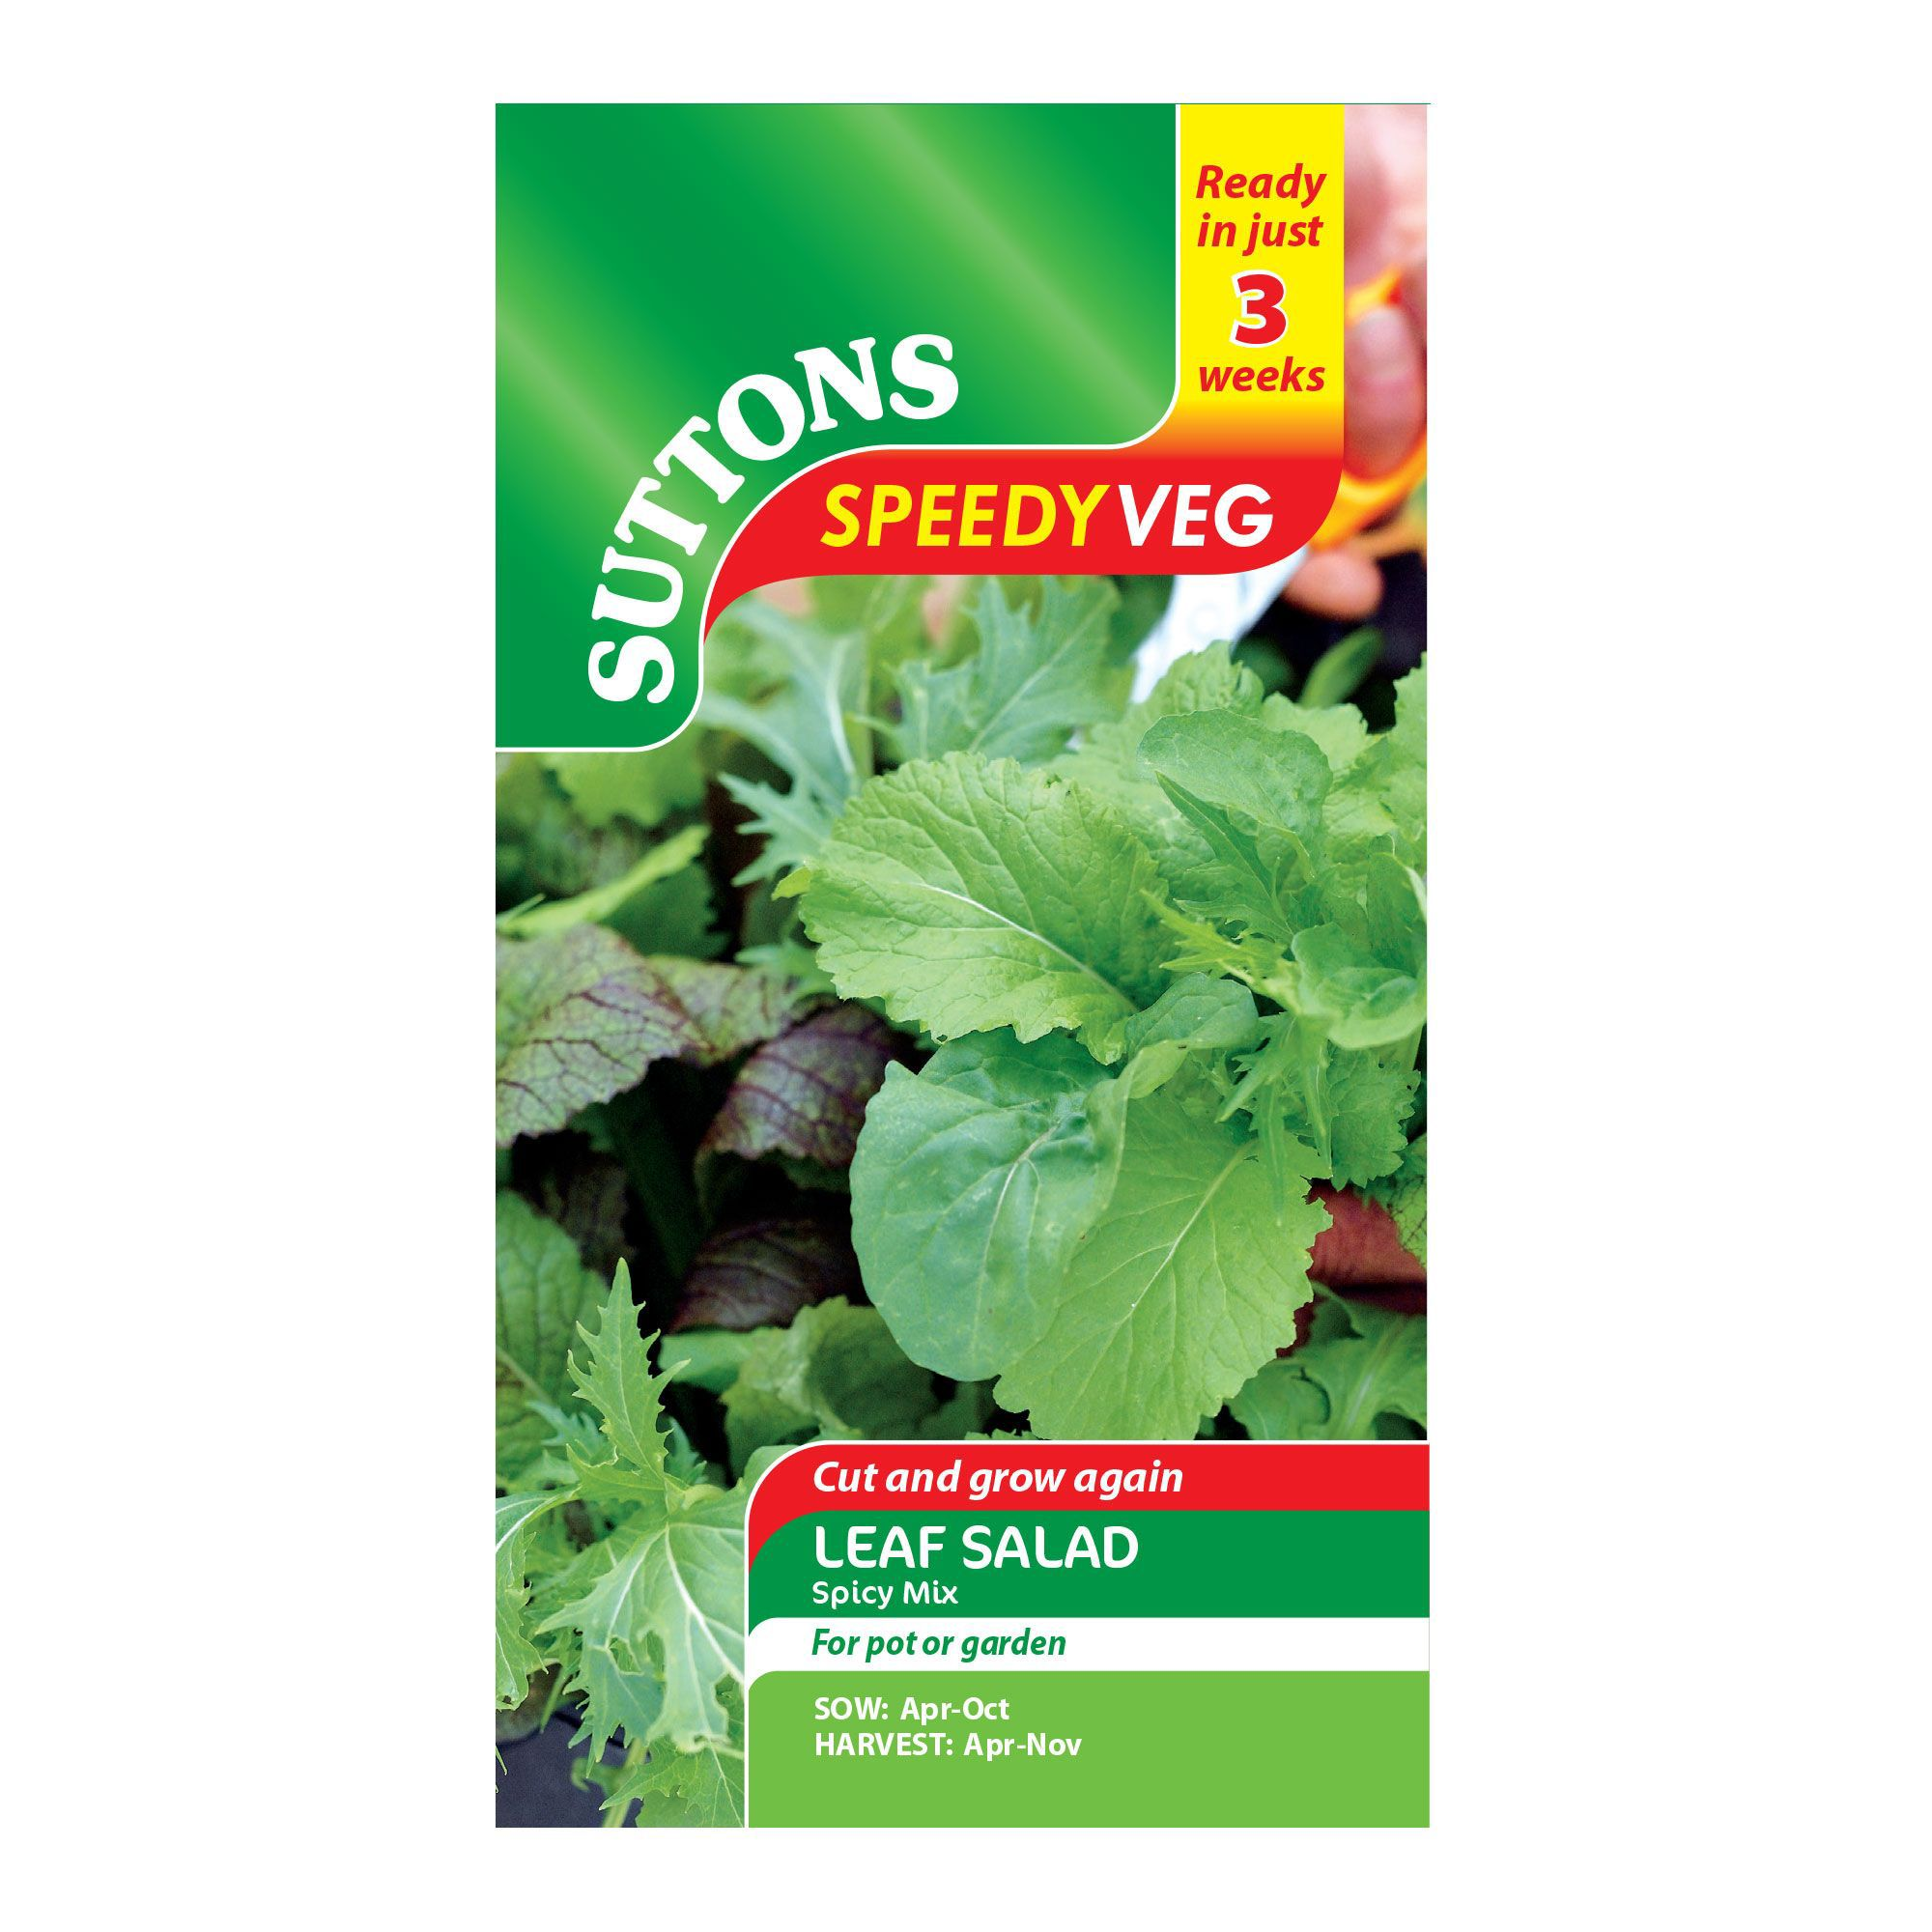 Suttons Speedy Veg Leaf Salad Seeds, Spicy Mix